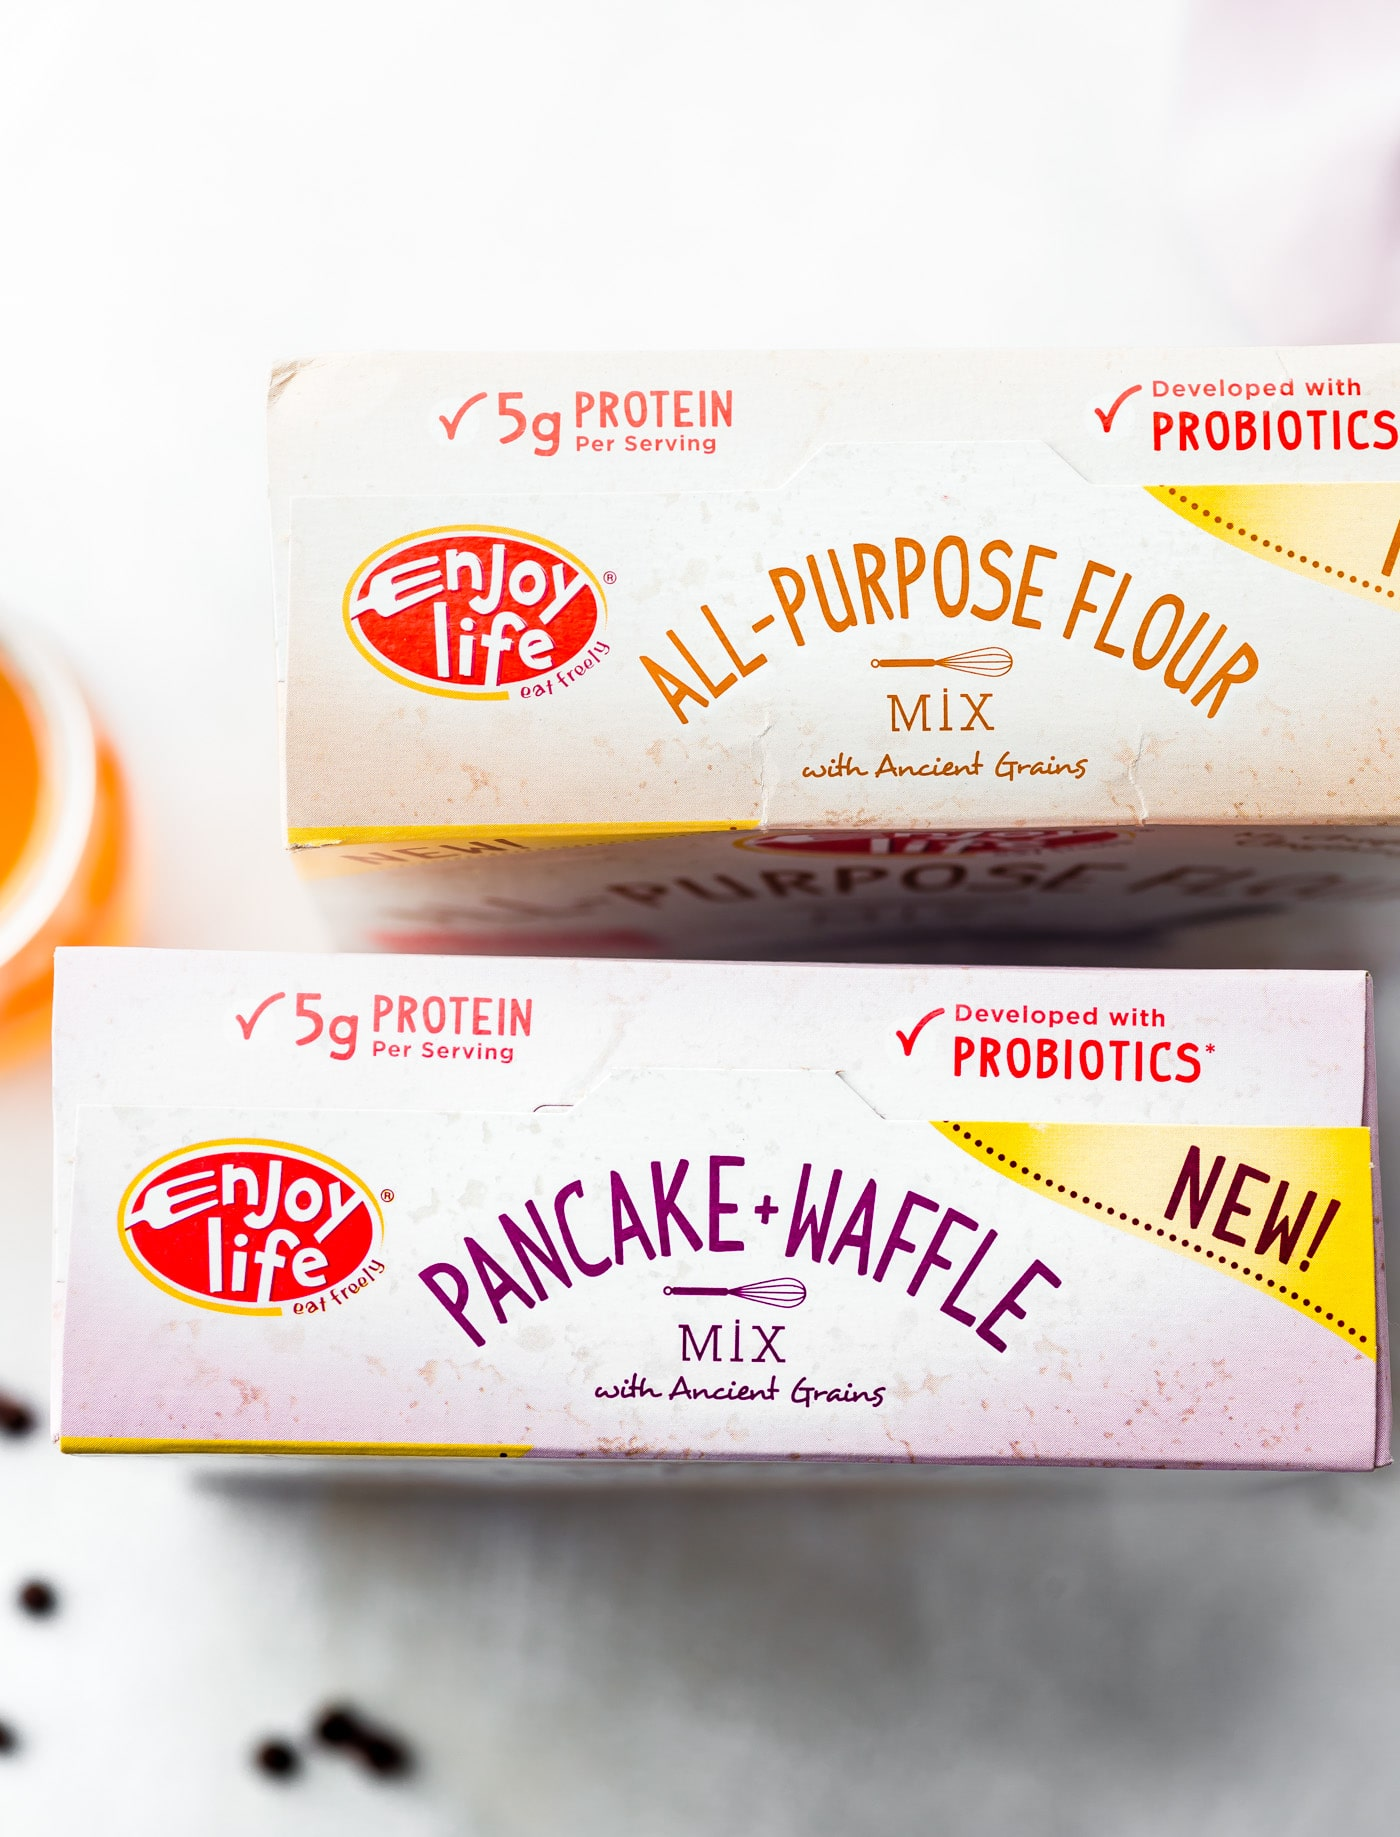 Enjoy Life Foods brand all-purpose flour and pancake/waffle mix